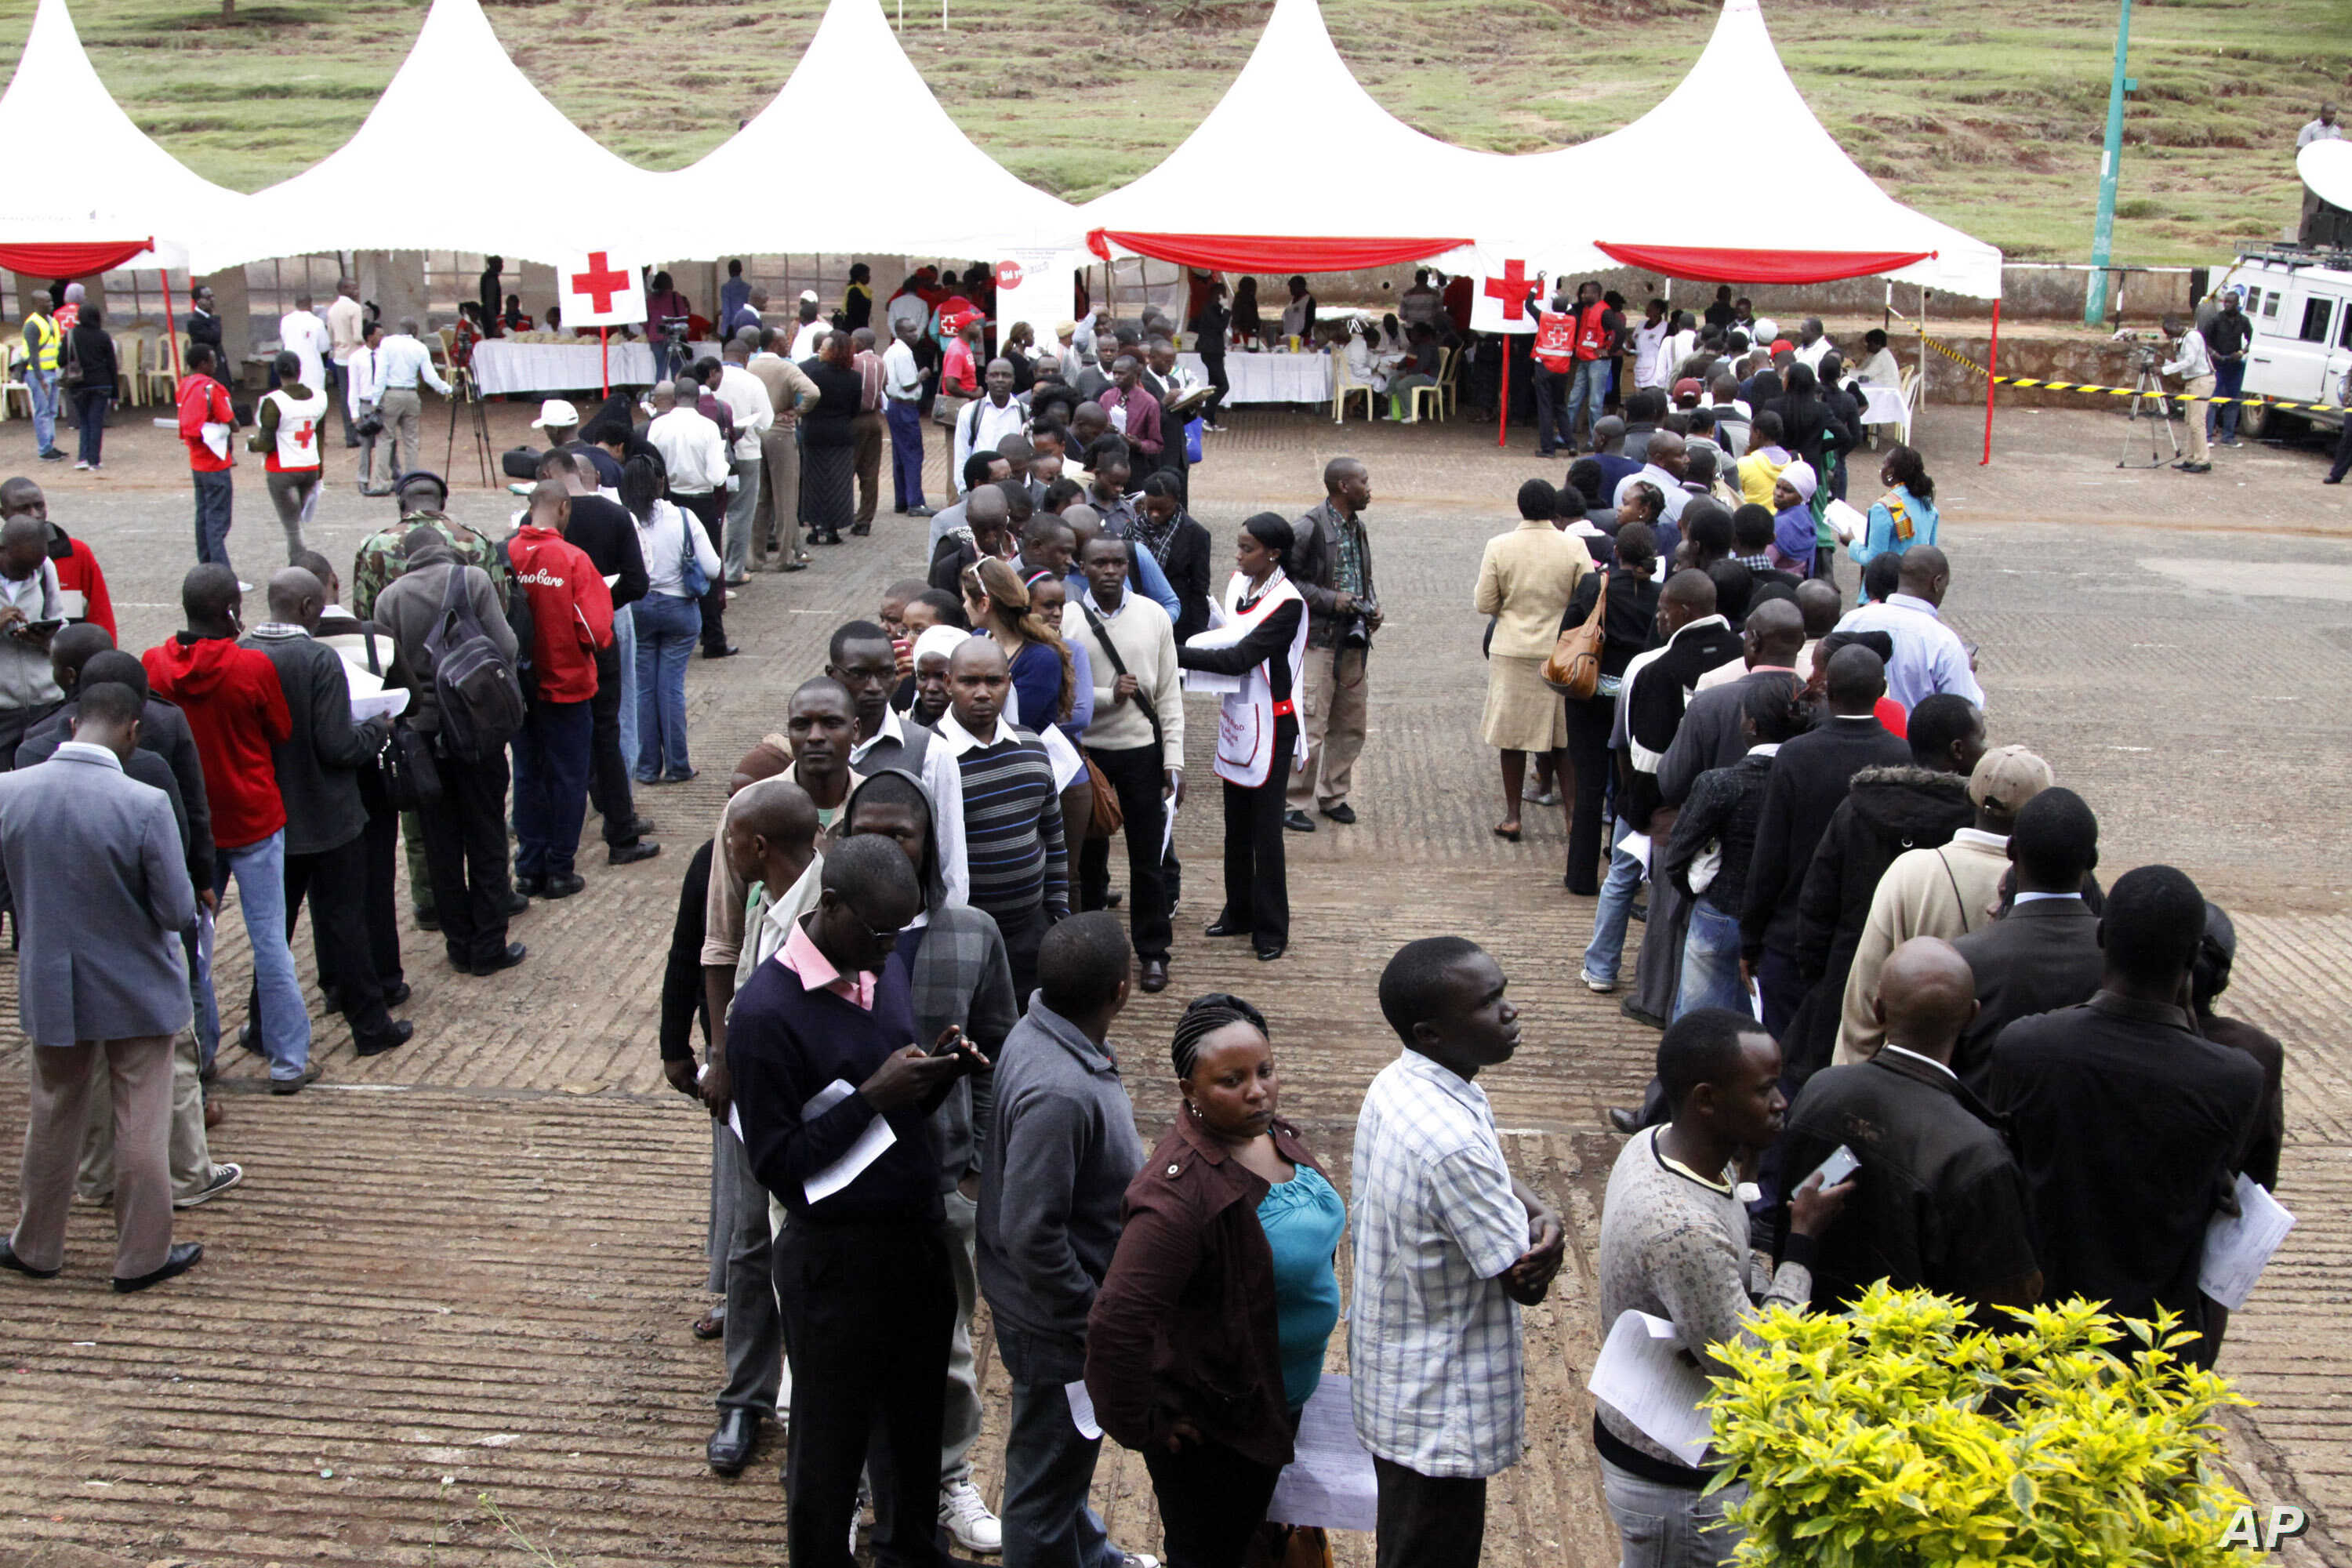 Kenyans line up to donate blood for those injured in Saturday's terrorist attack on a shopping mall, at Uhuru Park in Nairobi, Kenya, Monday, Sept. 23, 2013.